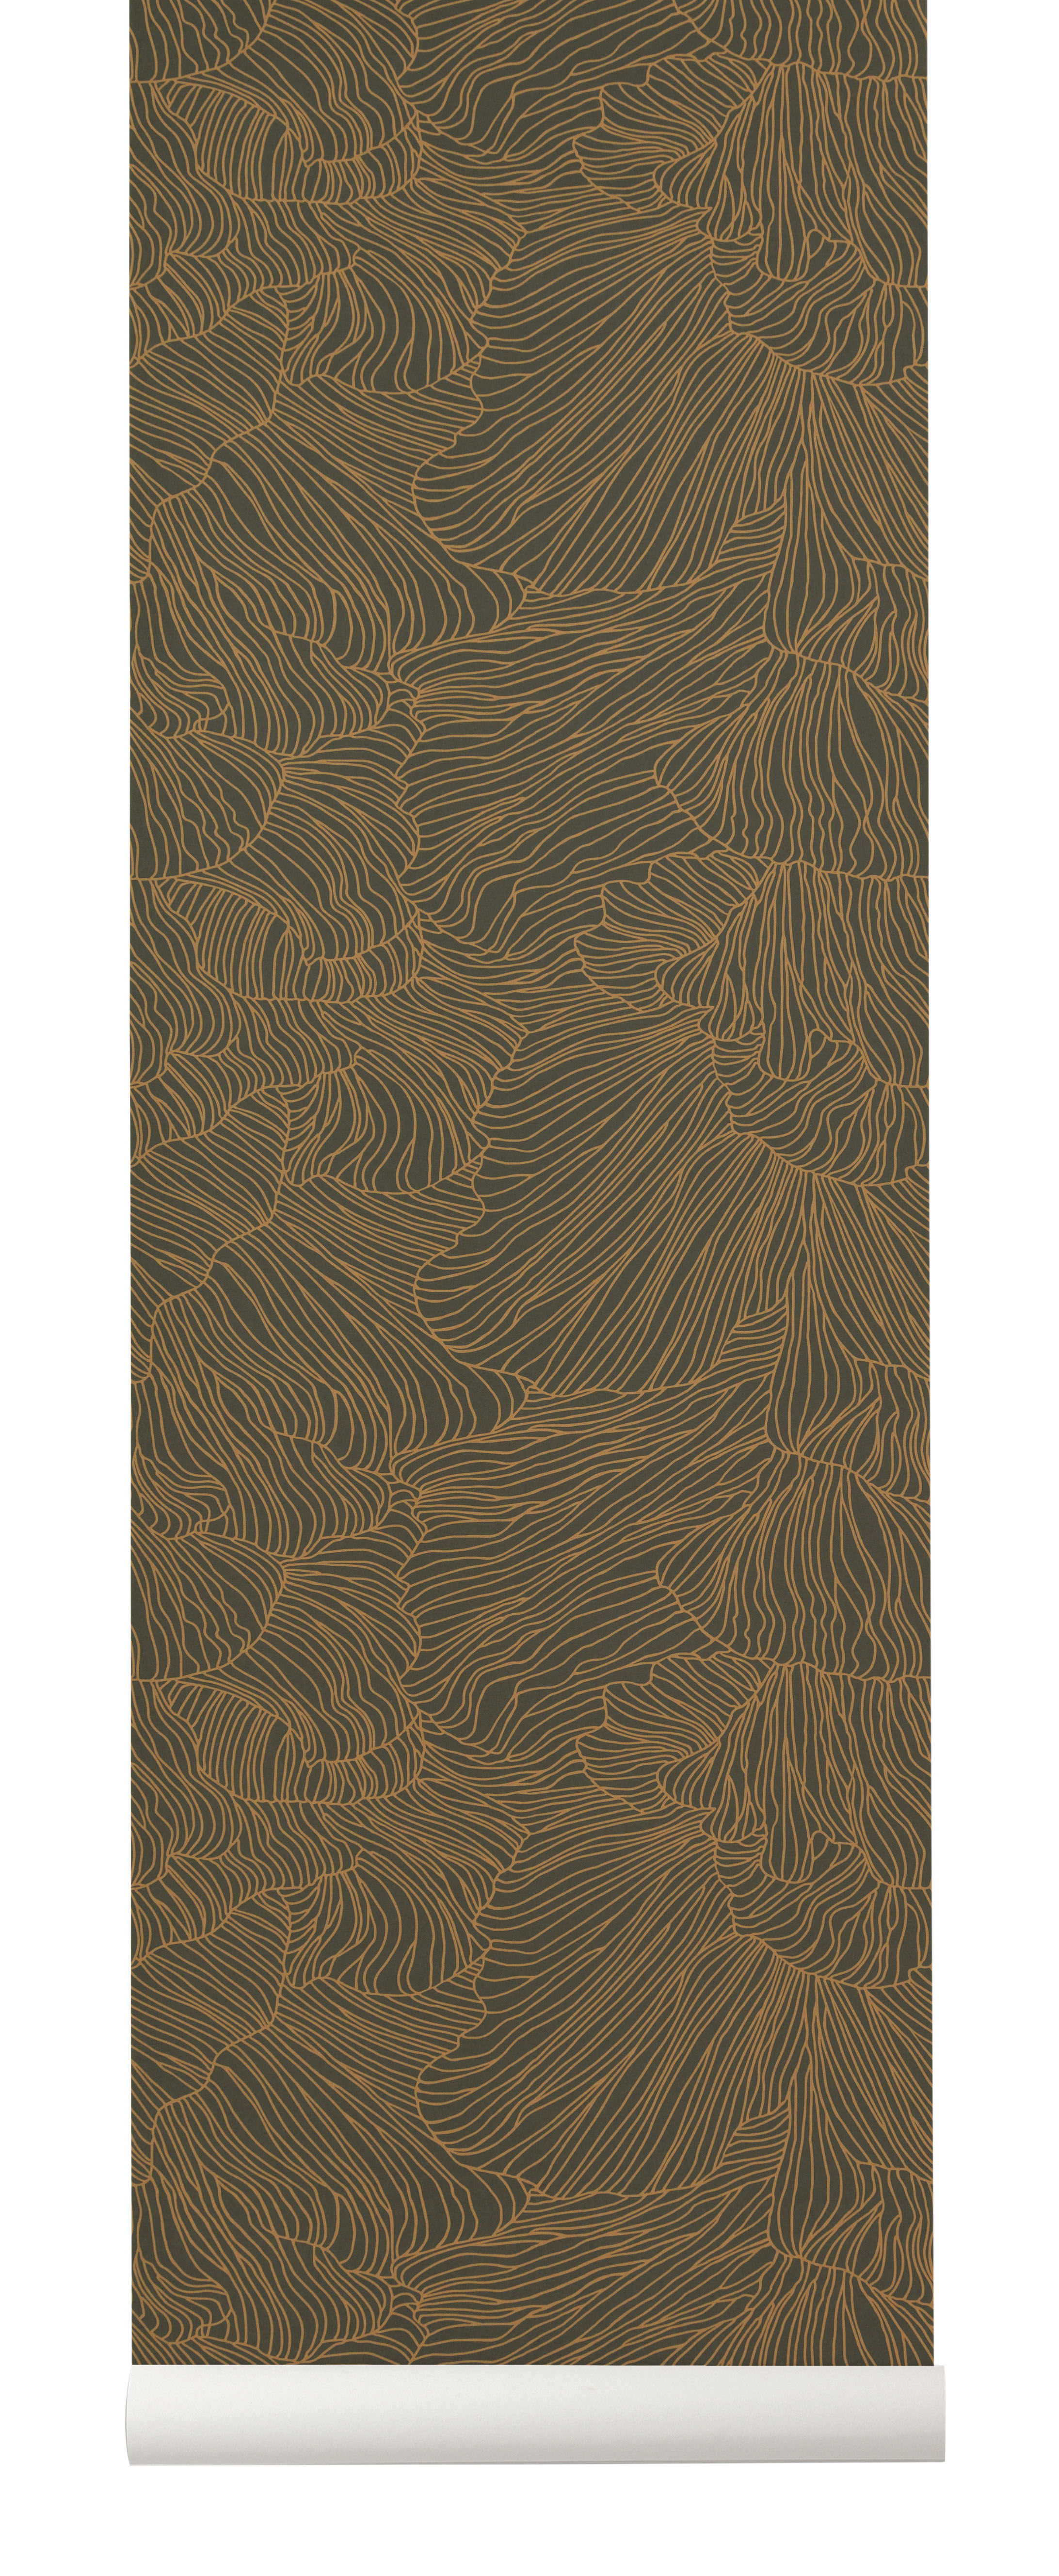 Decoration - Wallpaper & Wall Stickers - Coral Wallpaper - / 1 roll - Width 53 cm by Ferm Living - Dark green / Gold - Non-woven fabric